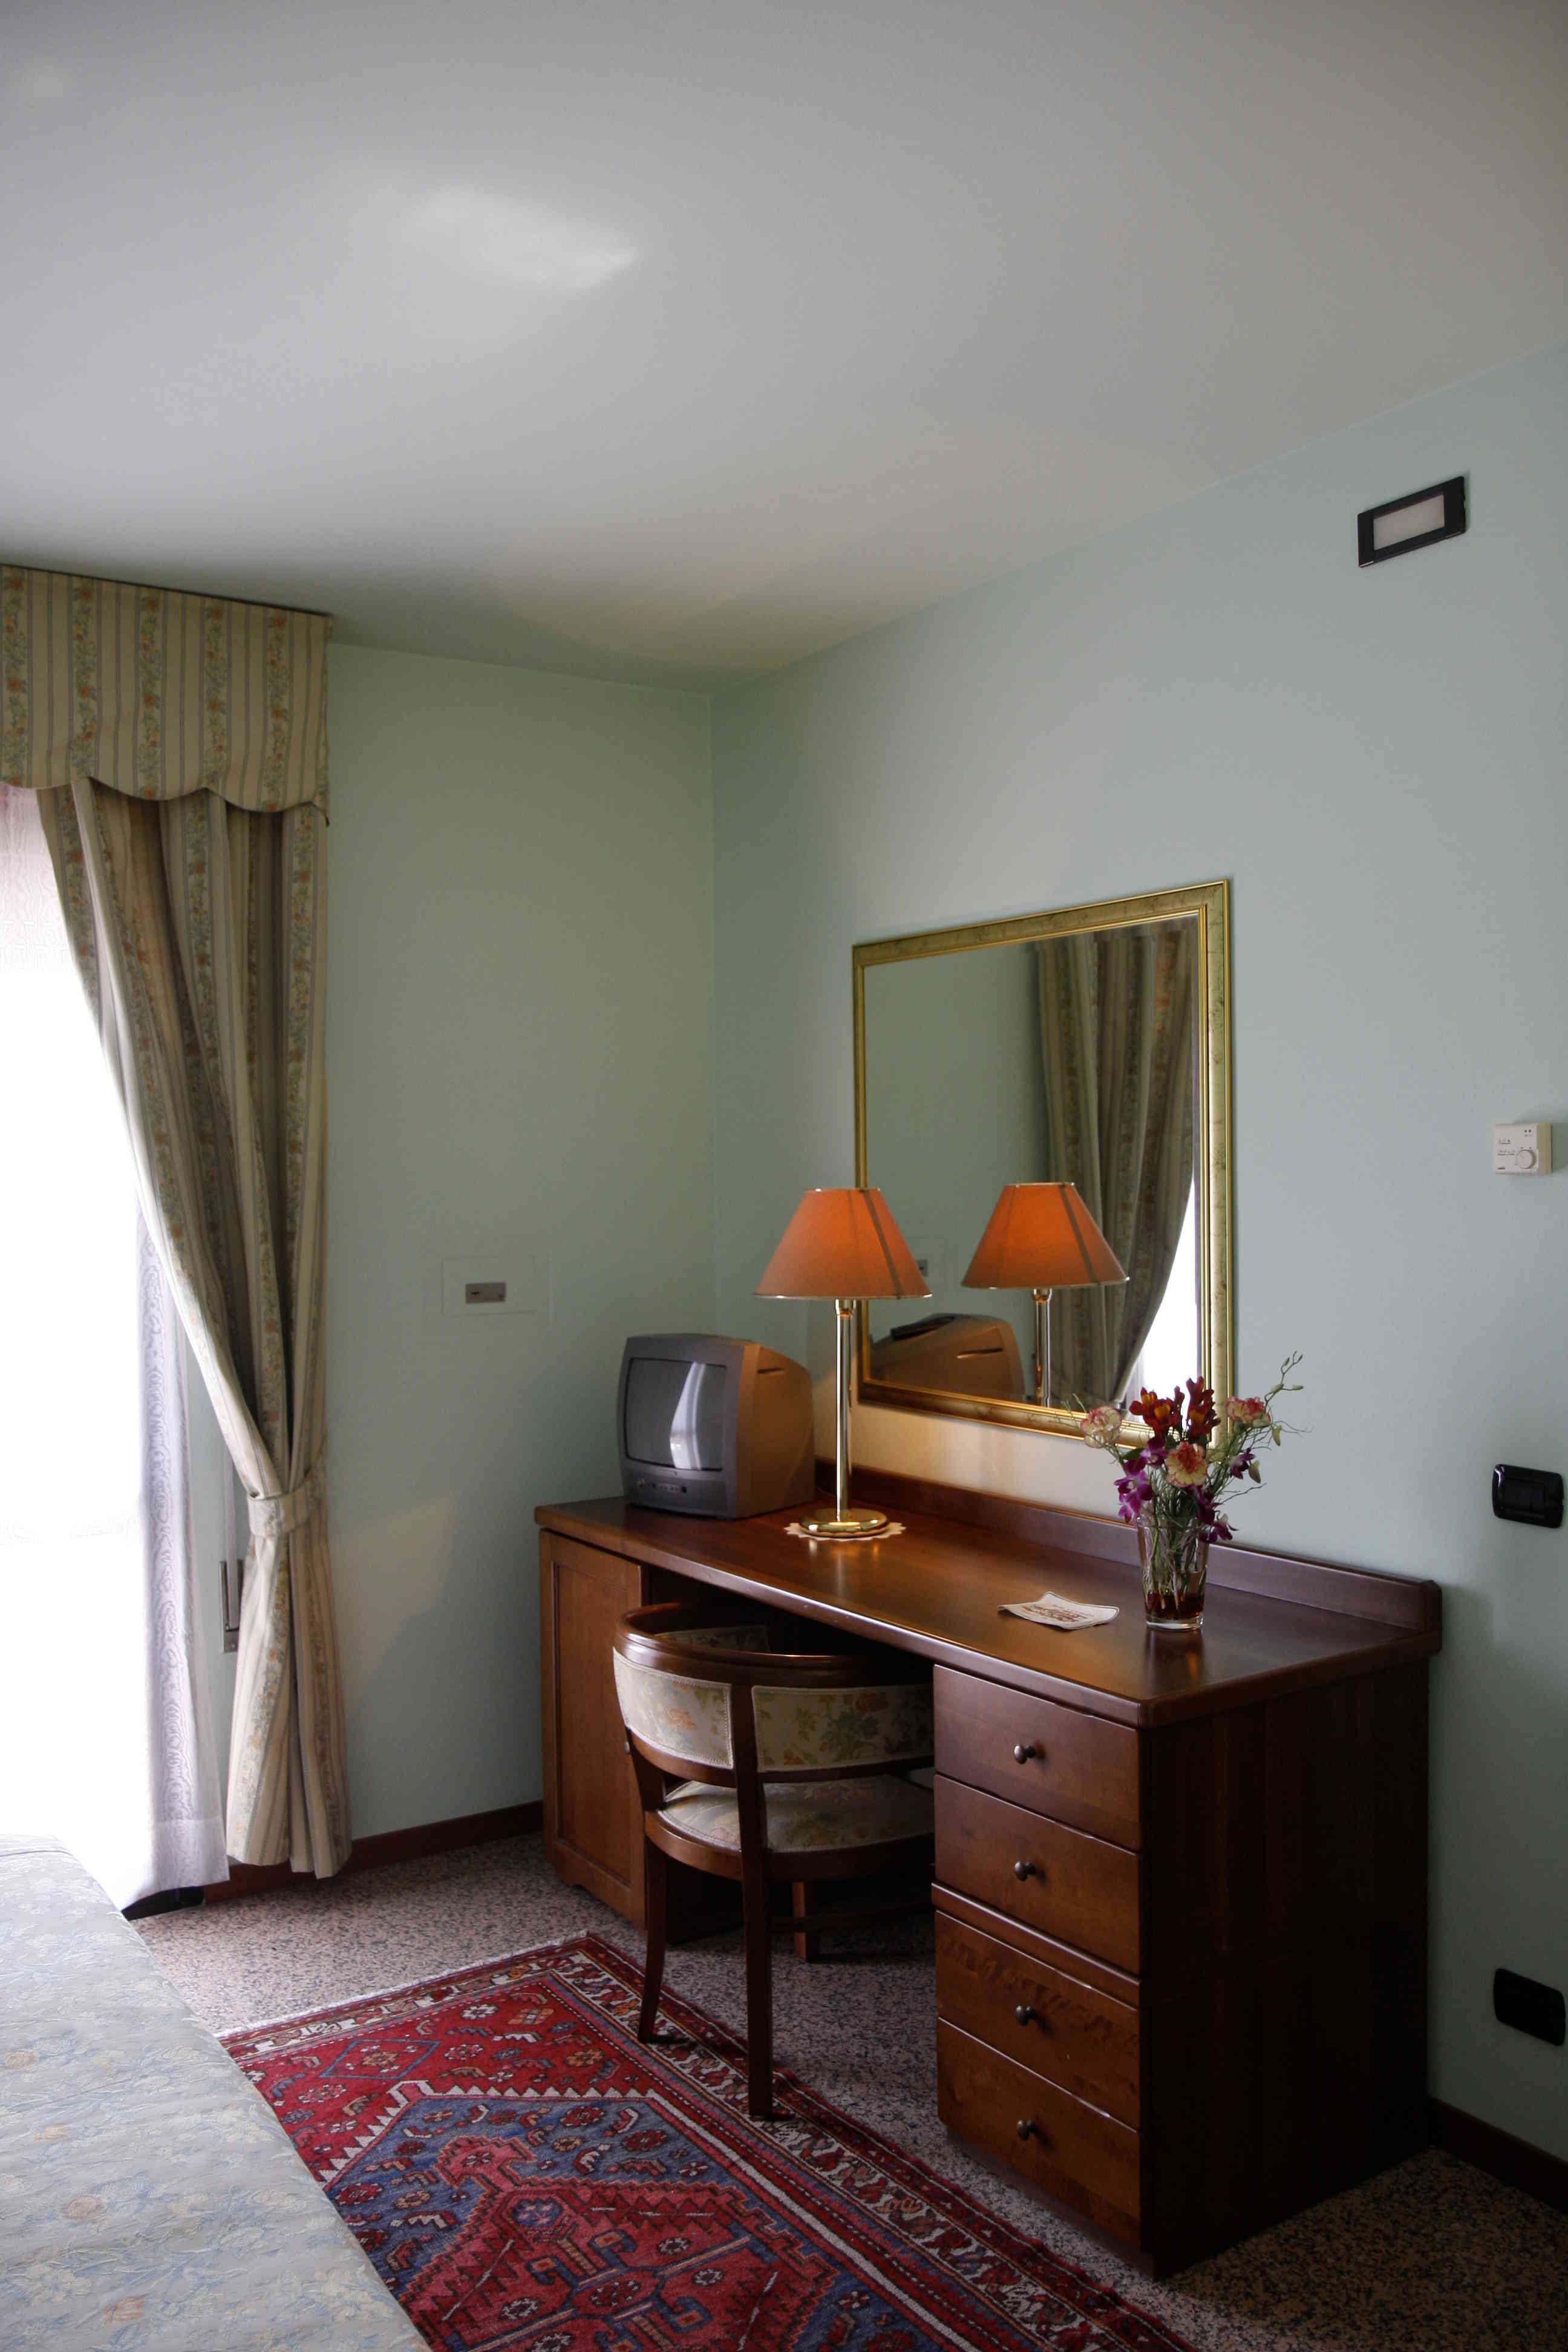 Rooms (7)